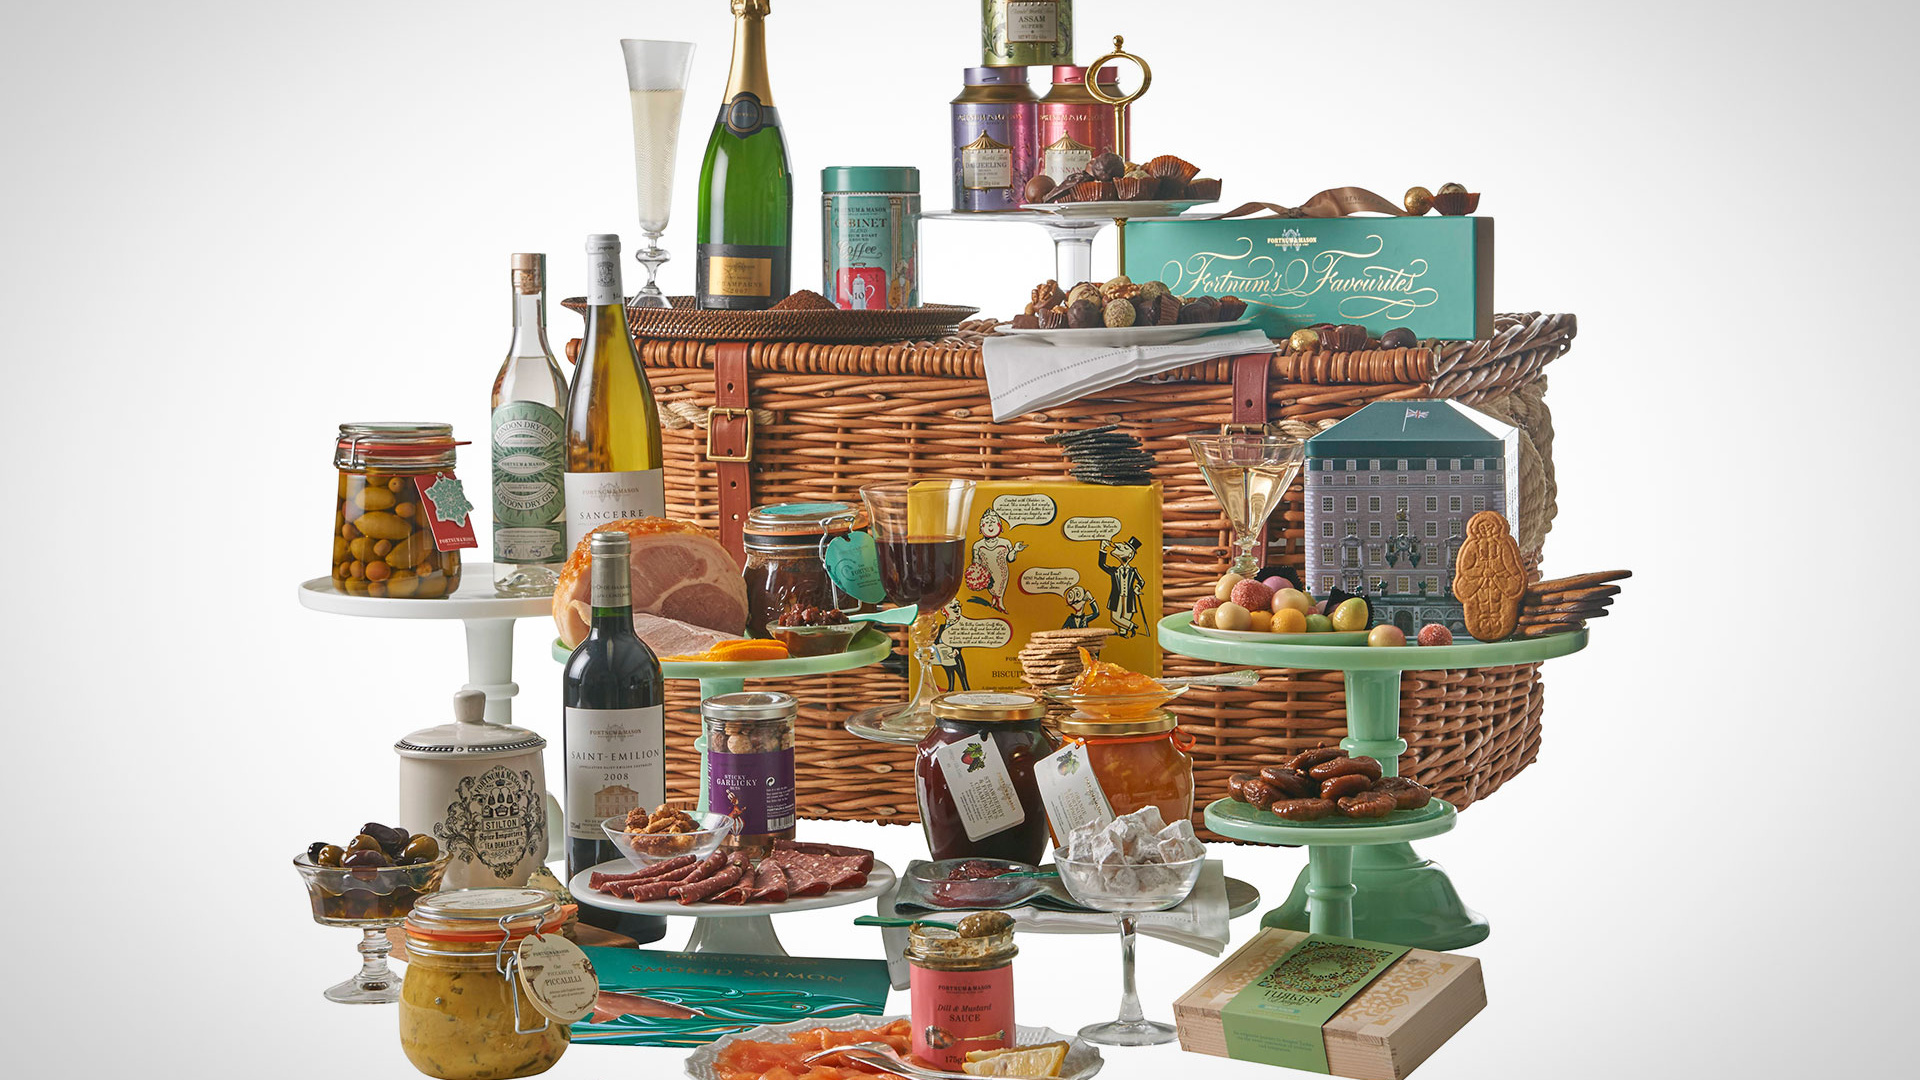 A hamper from Fortnum & Mason